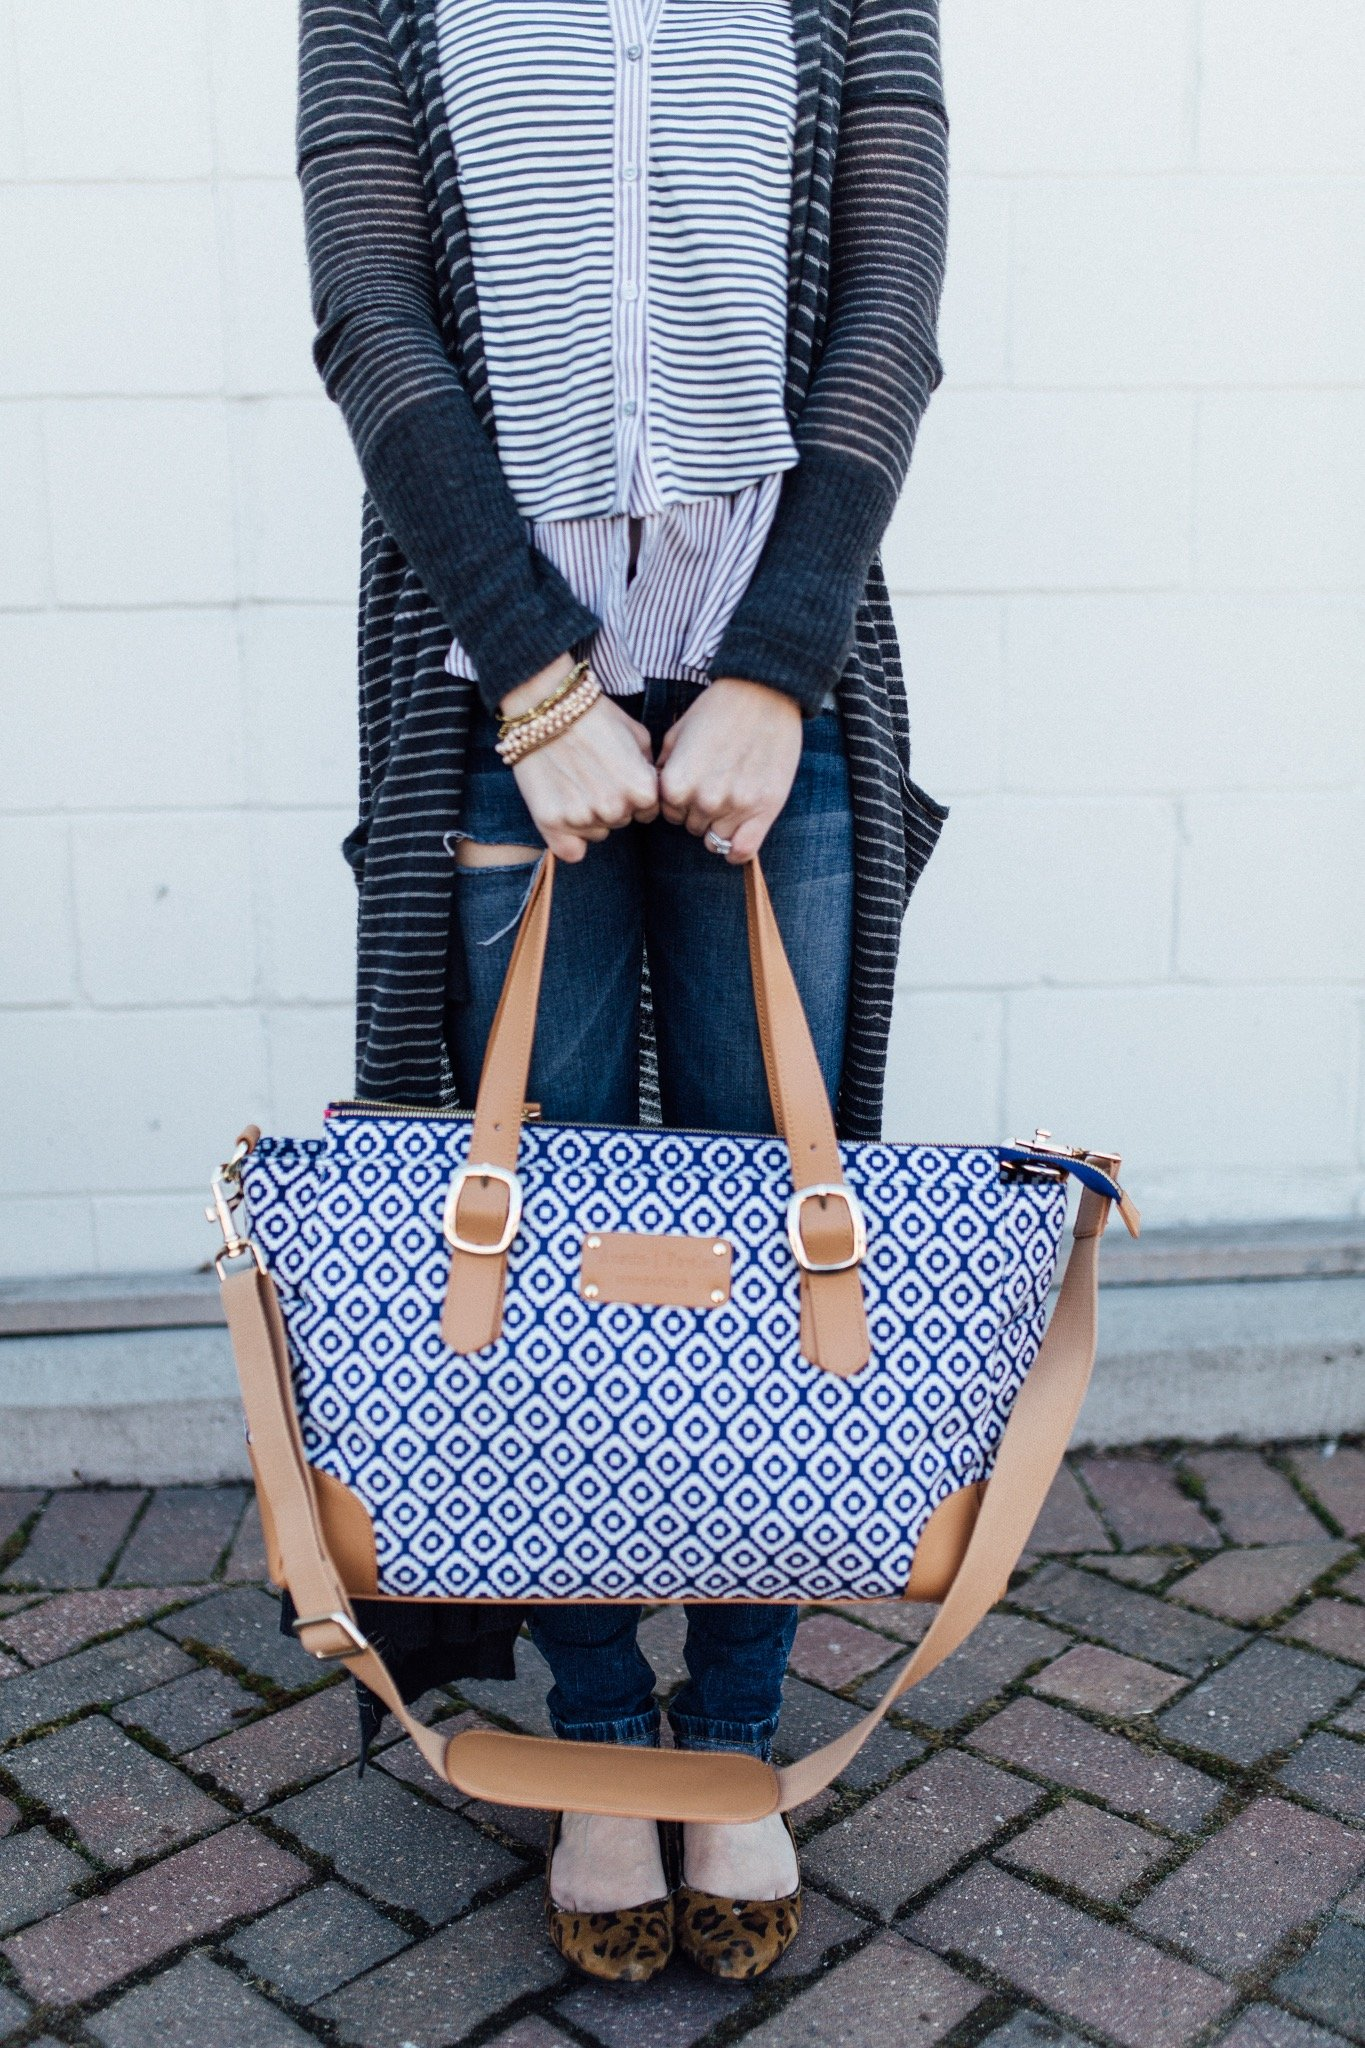 Holding a classy organized diaper bag by minneapolis brand austin fowler in long free people sweater and leopard flats.